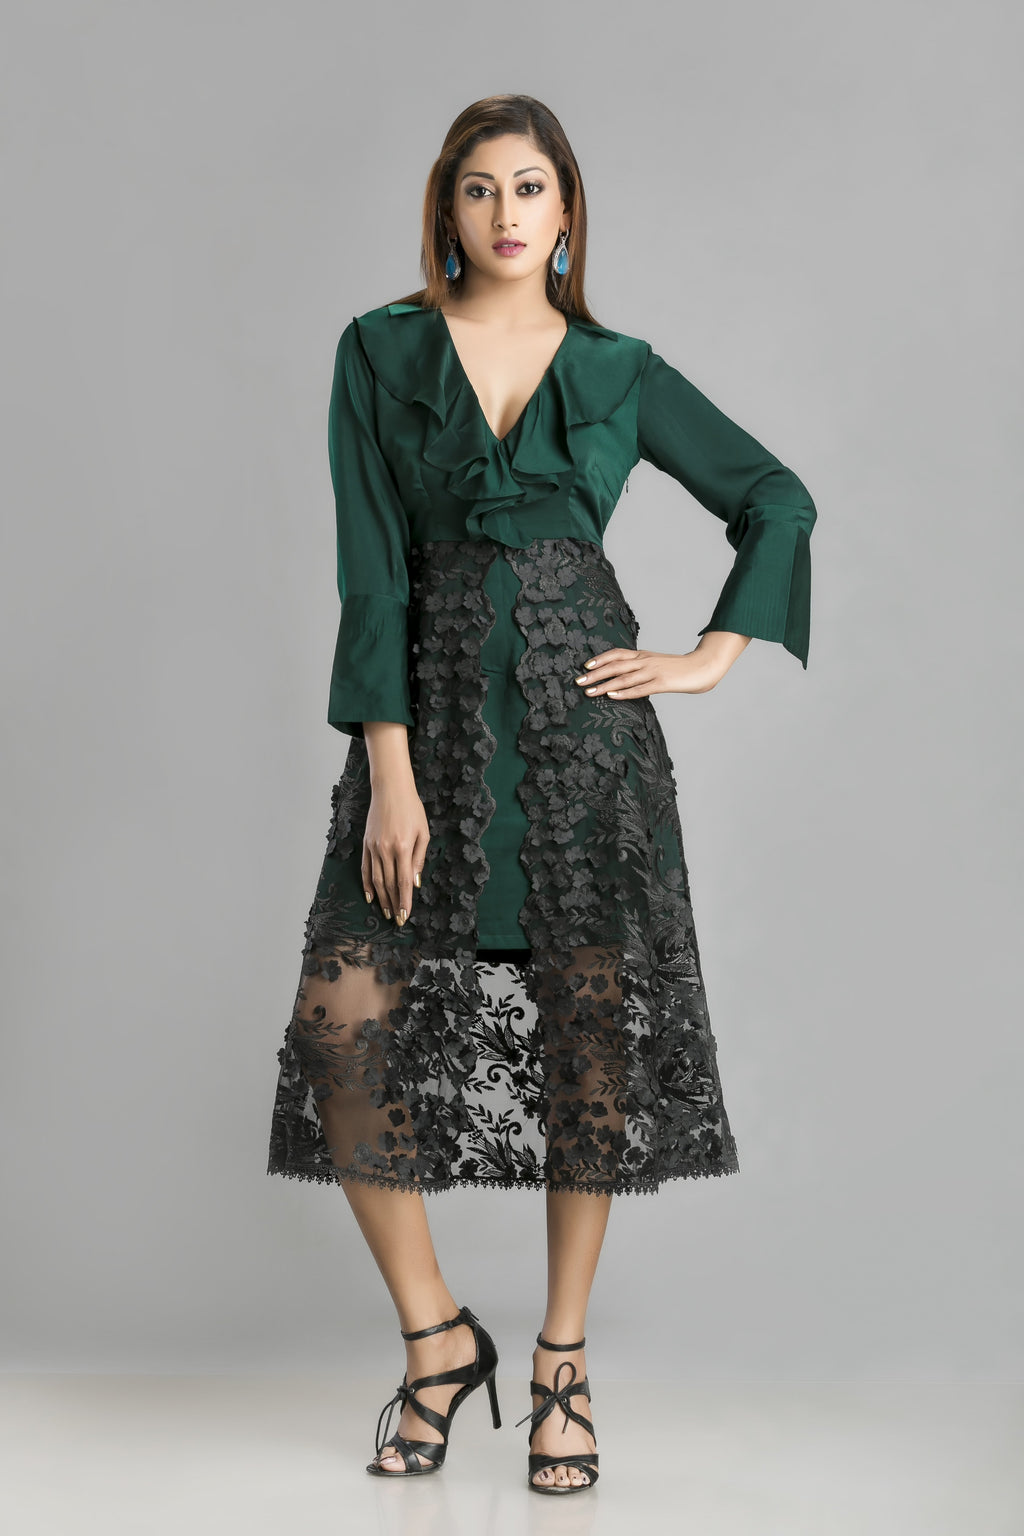 So in Love with Jade – A lace dress for a romantically different you